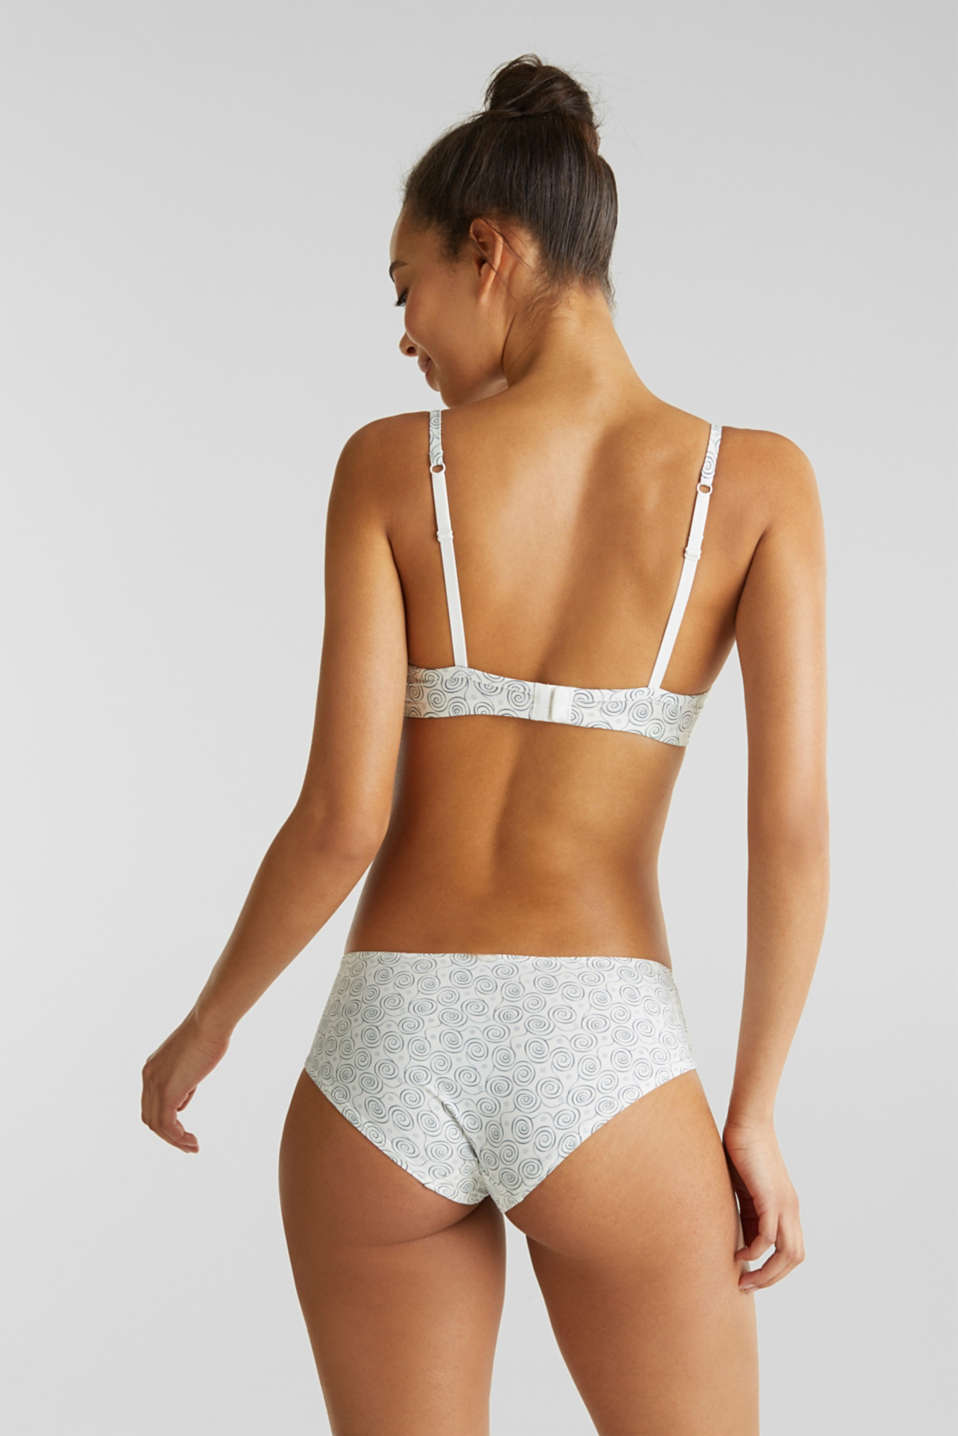 Padded underwire bra with a pixelated print, OFF WHITE, detail image number 1